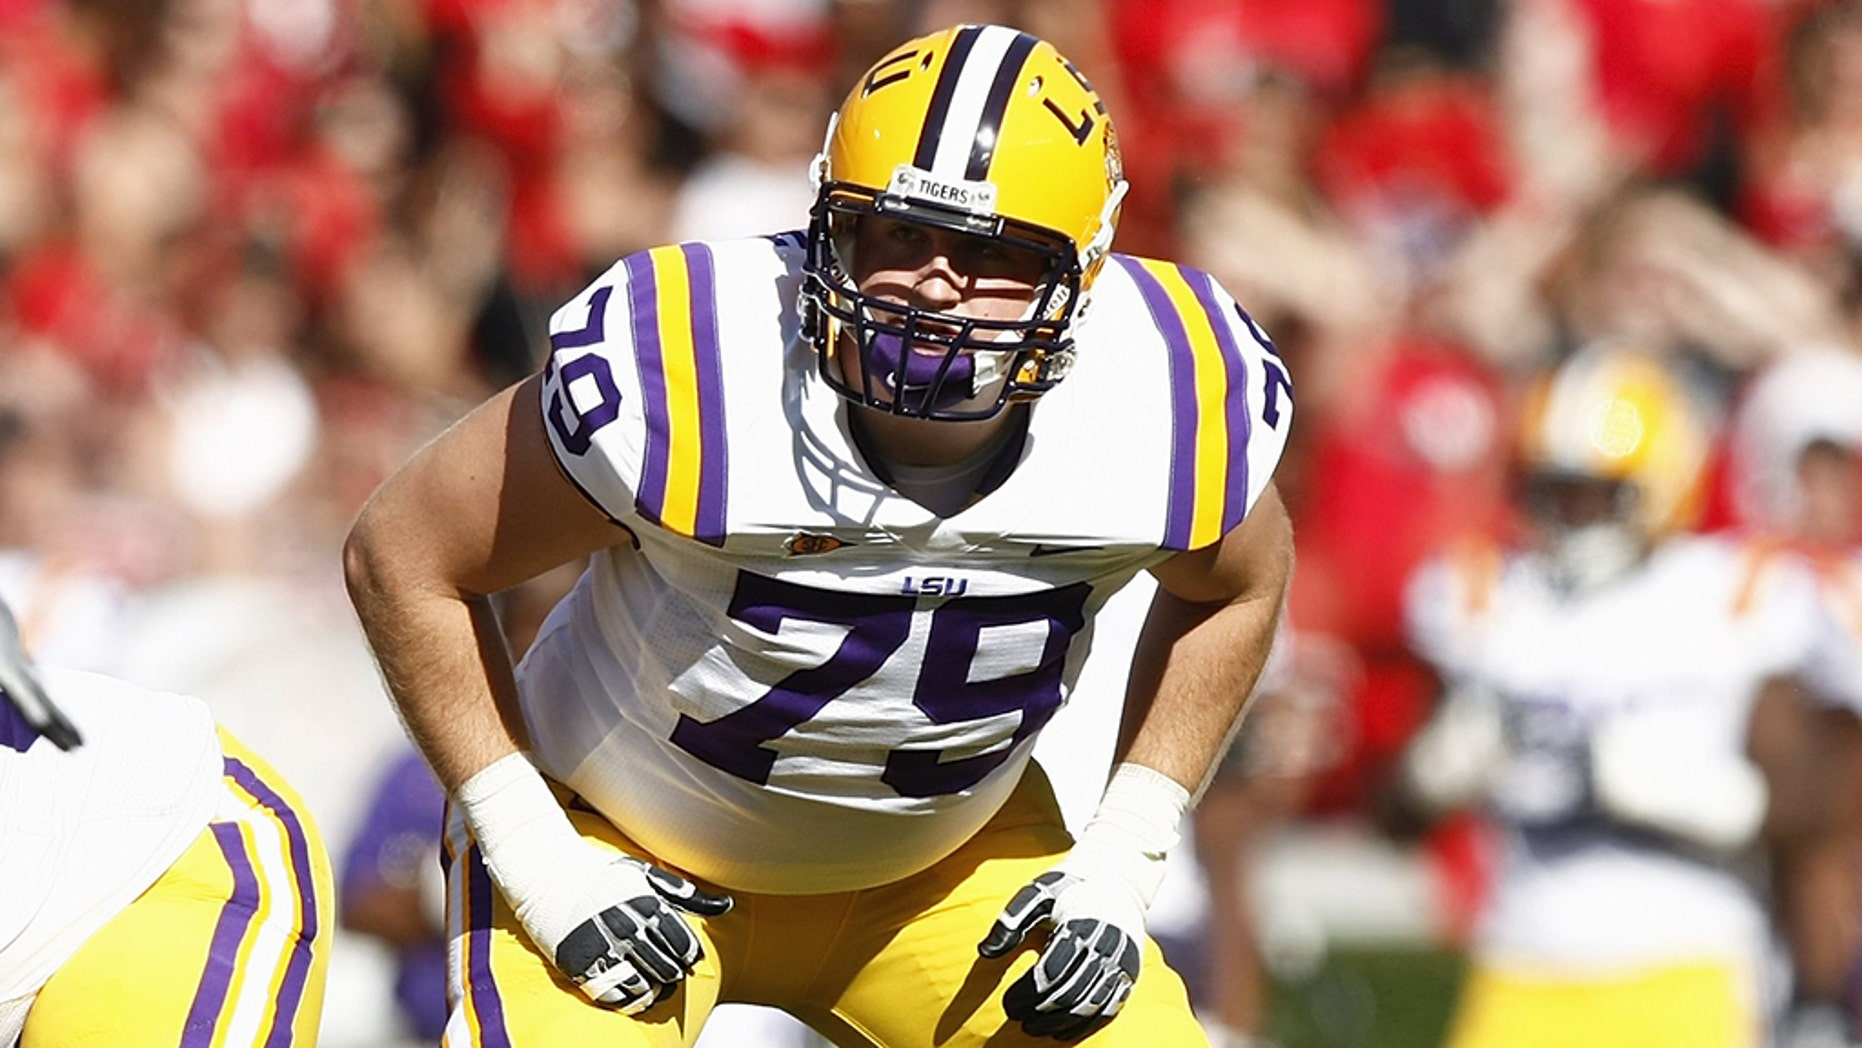 Matt Branch, former LSU Tigers offensive lineman, loses leg in hunting accident